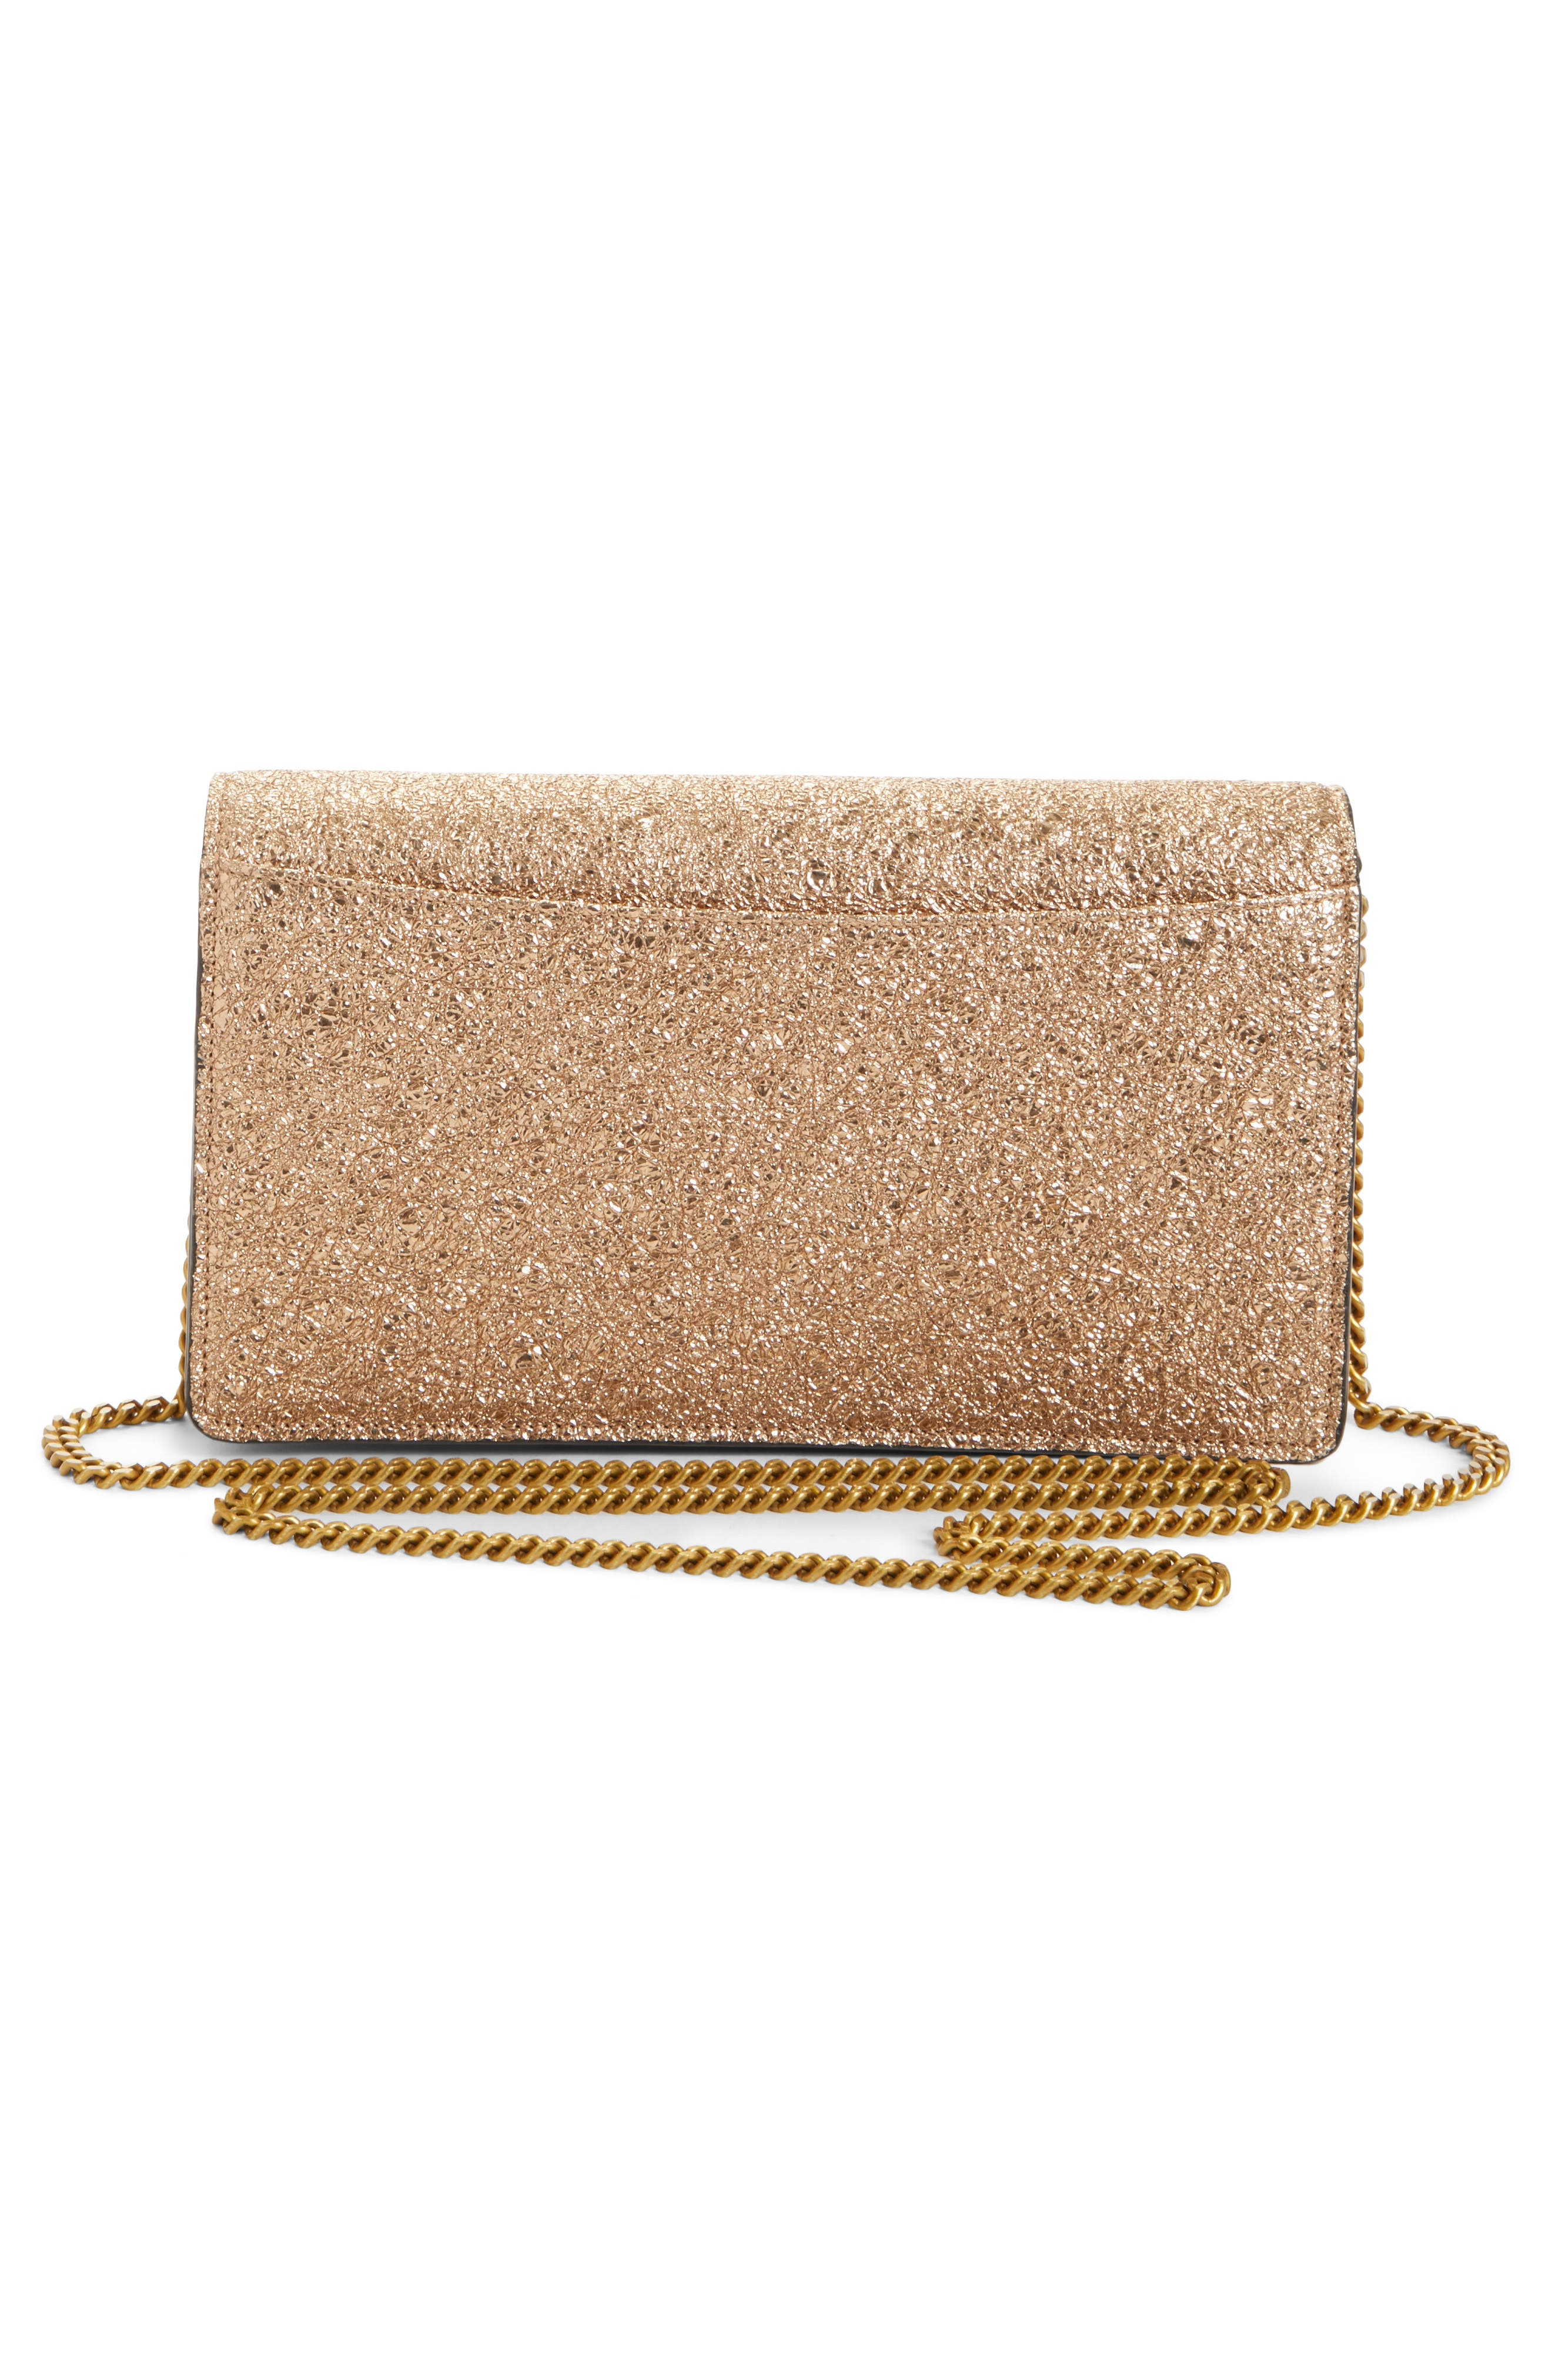 Polina Metallic Leather Crossbody Clutch,                             Alternate thumbnail 3, color,                             Sandy Brown